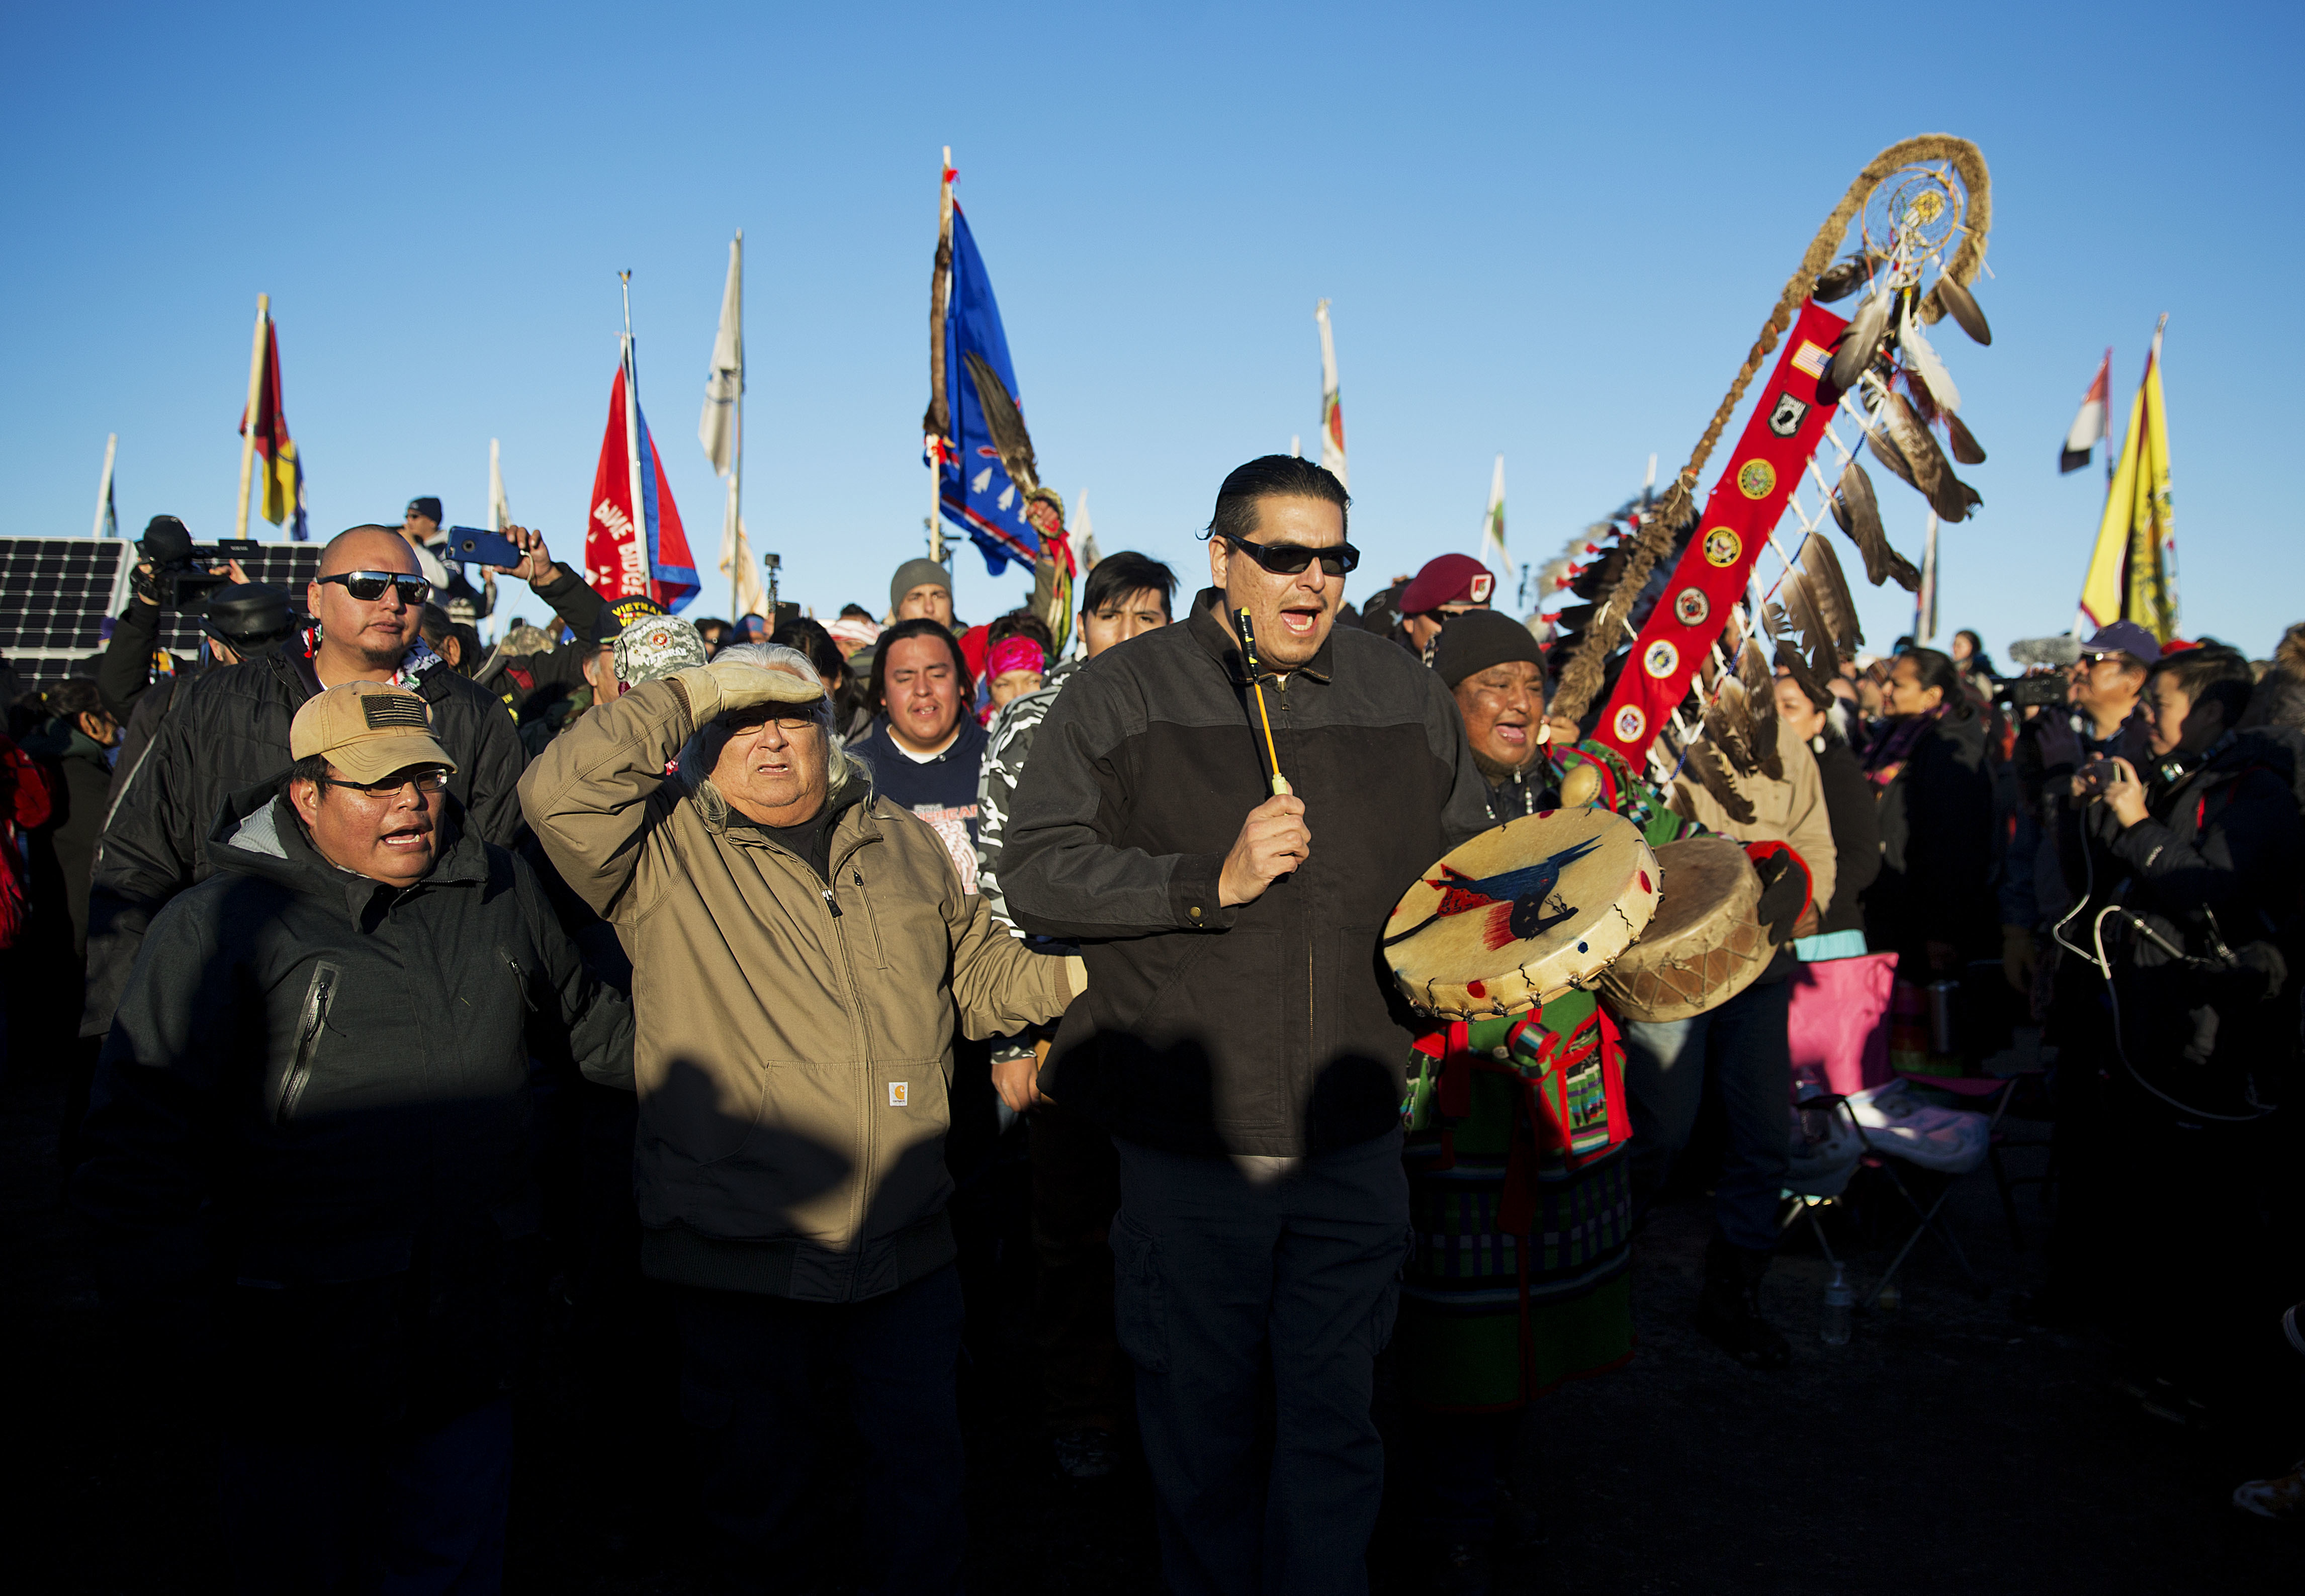 A Native American drum procession moves through the Oceti Sakowin camp after it was announced that the U.S. Army Corps of Engineers won't grant easement for the Dakota Access oil pipeline in Cannon Ball, N.D., on Dec. 4, 2016. (AP Photo/David Goldman)